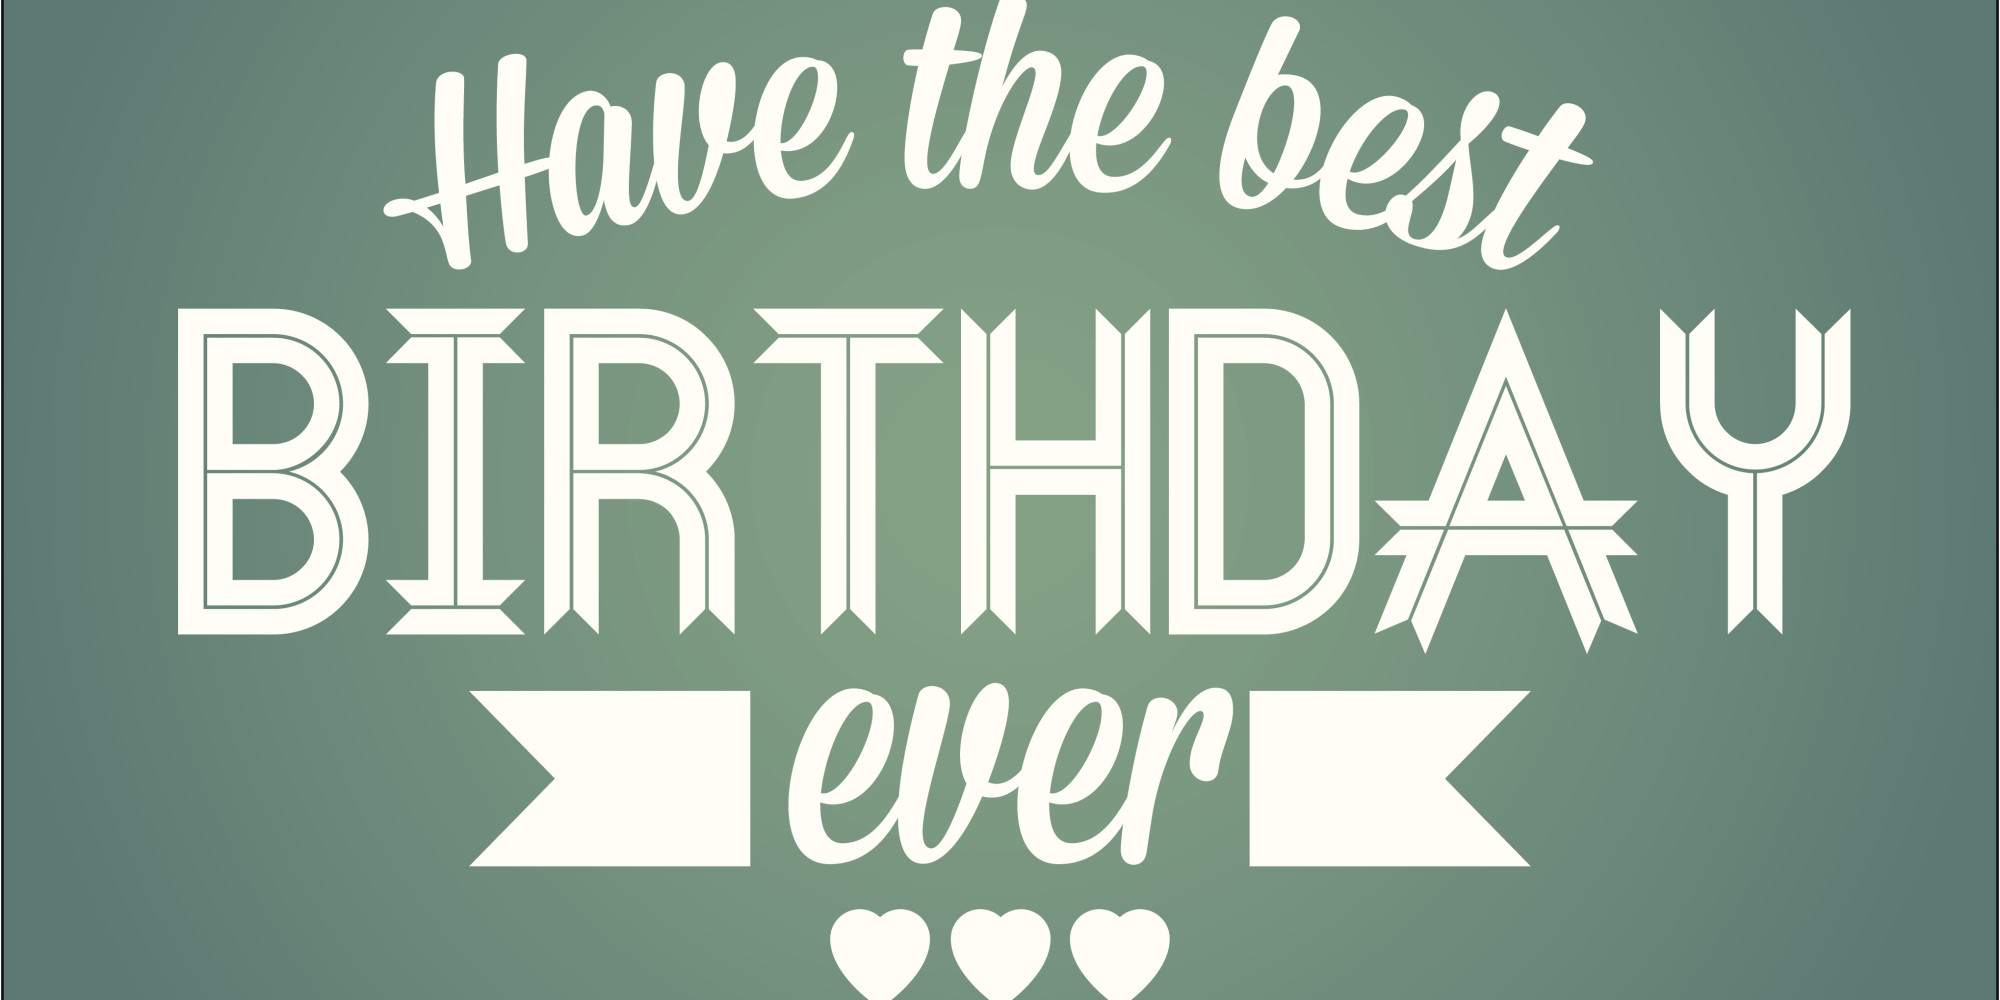 9 Of The Funniest Ecards Youll Ever Read – Happy Birthday Email Cards